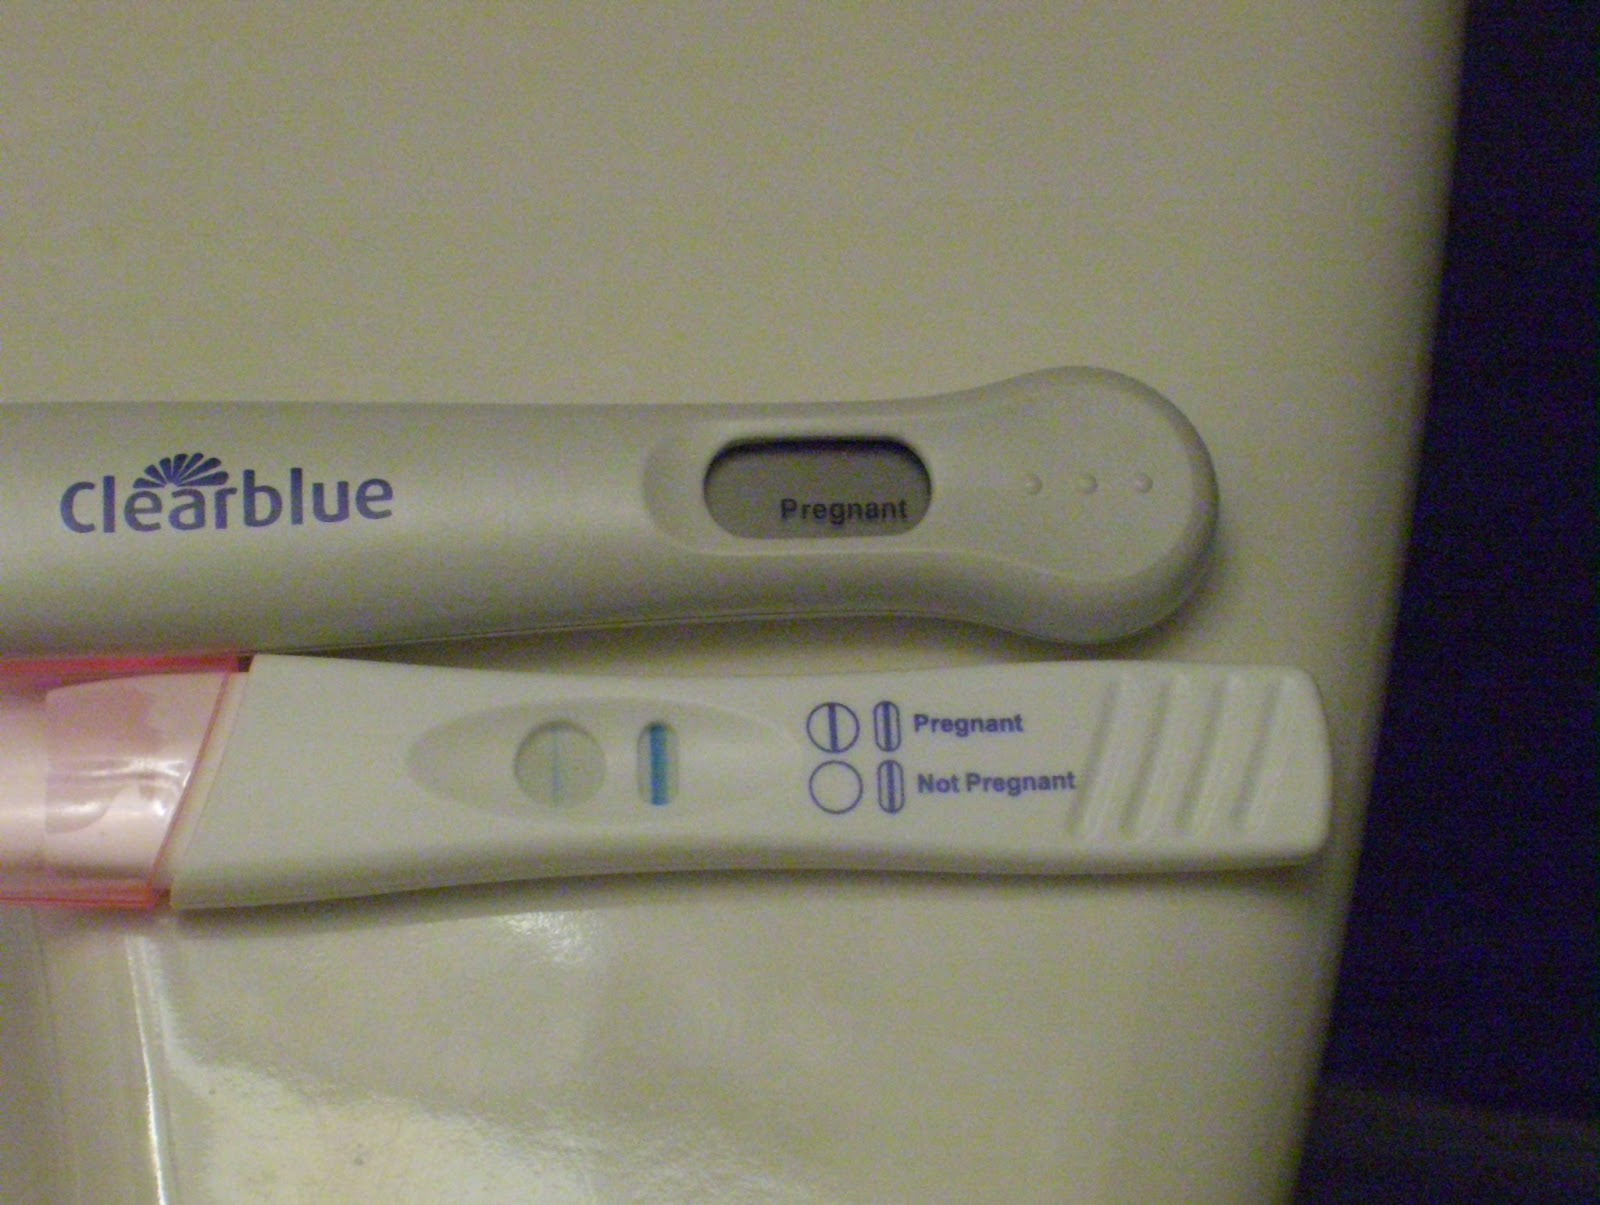 Byards' Bywords: Baby FAQ (and a pregnancy test)